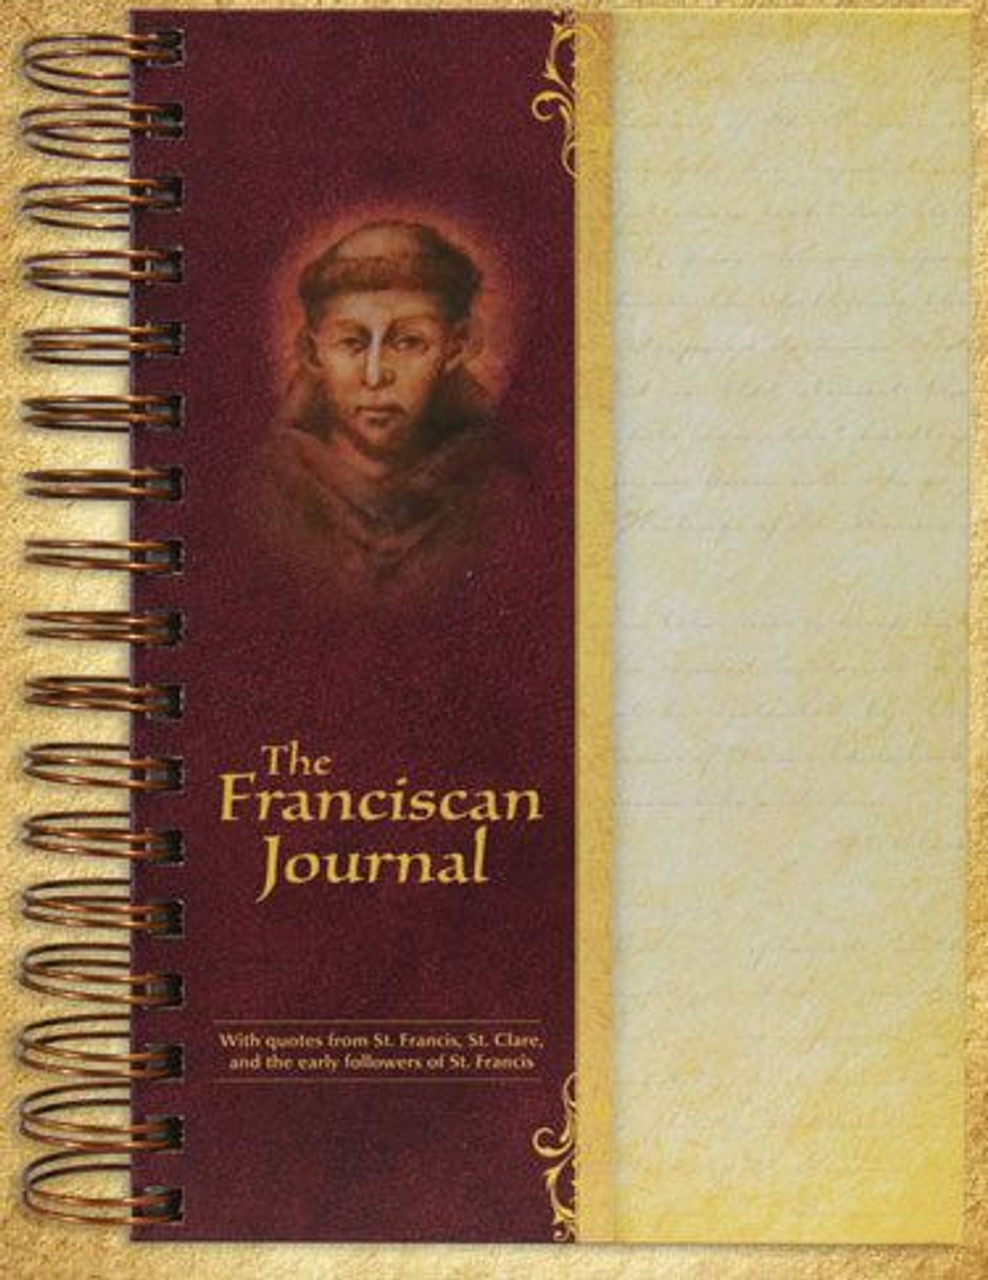 The Franciscan Journal, St. Francis